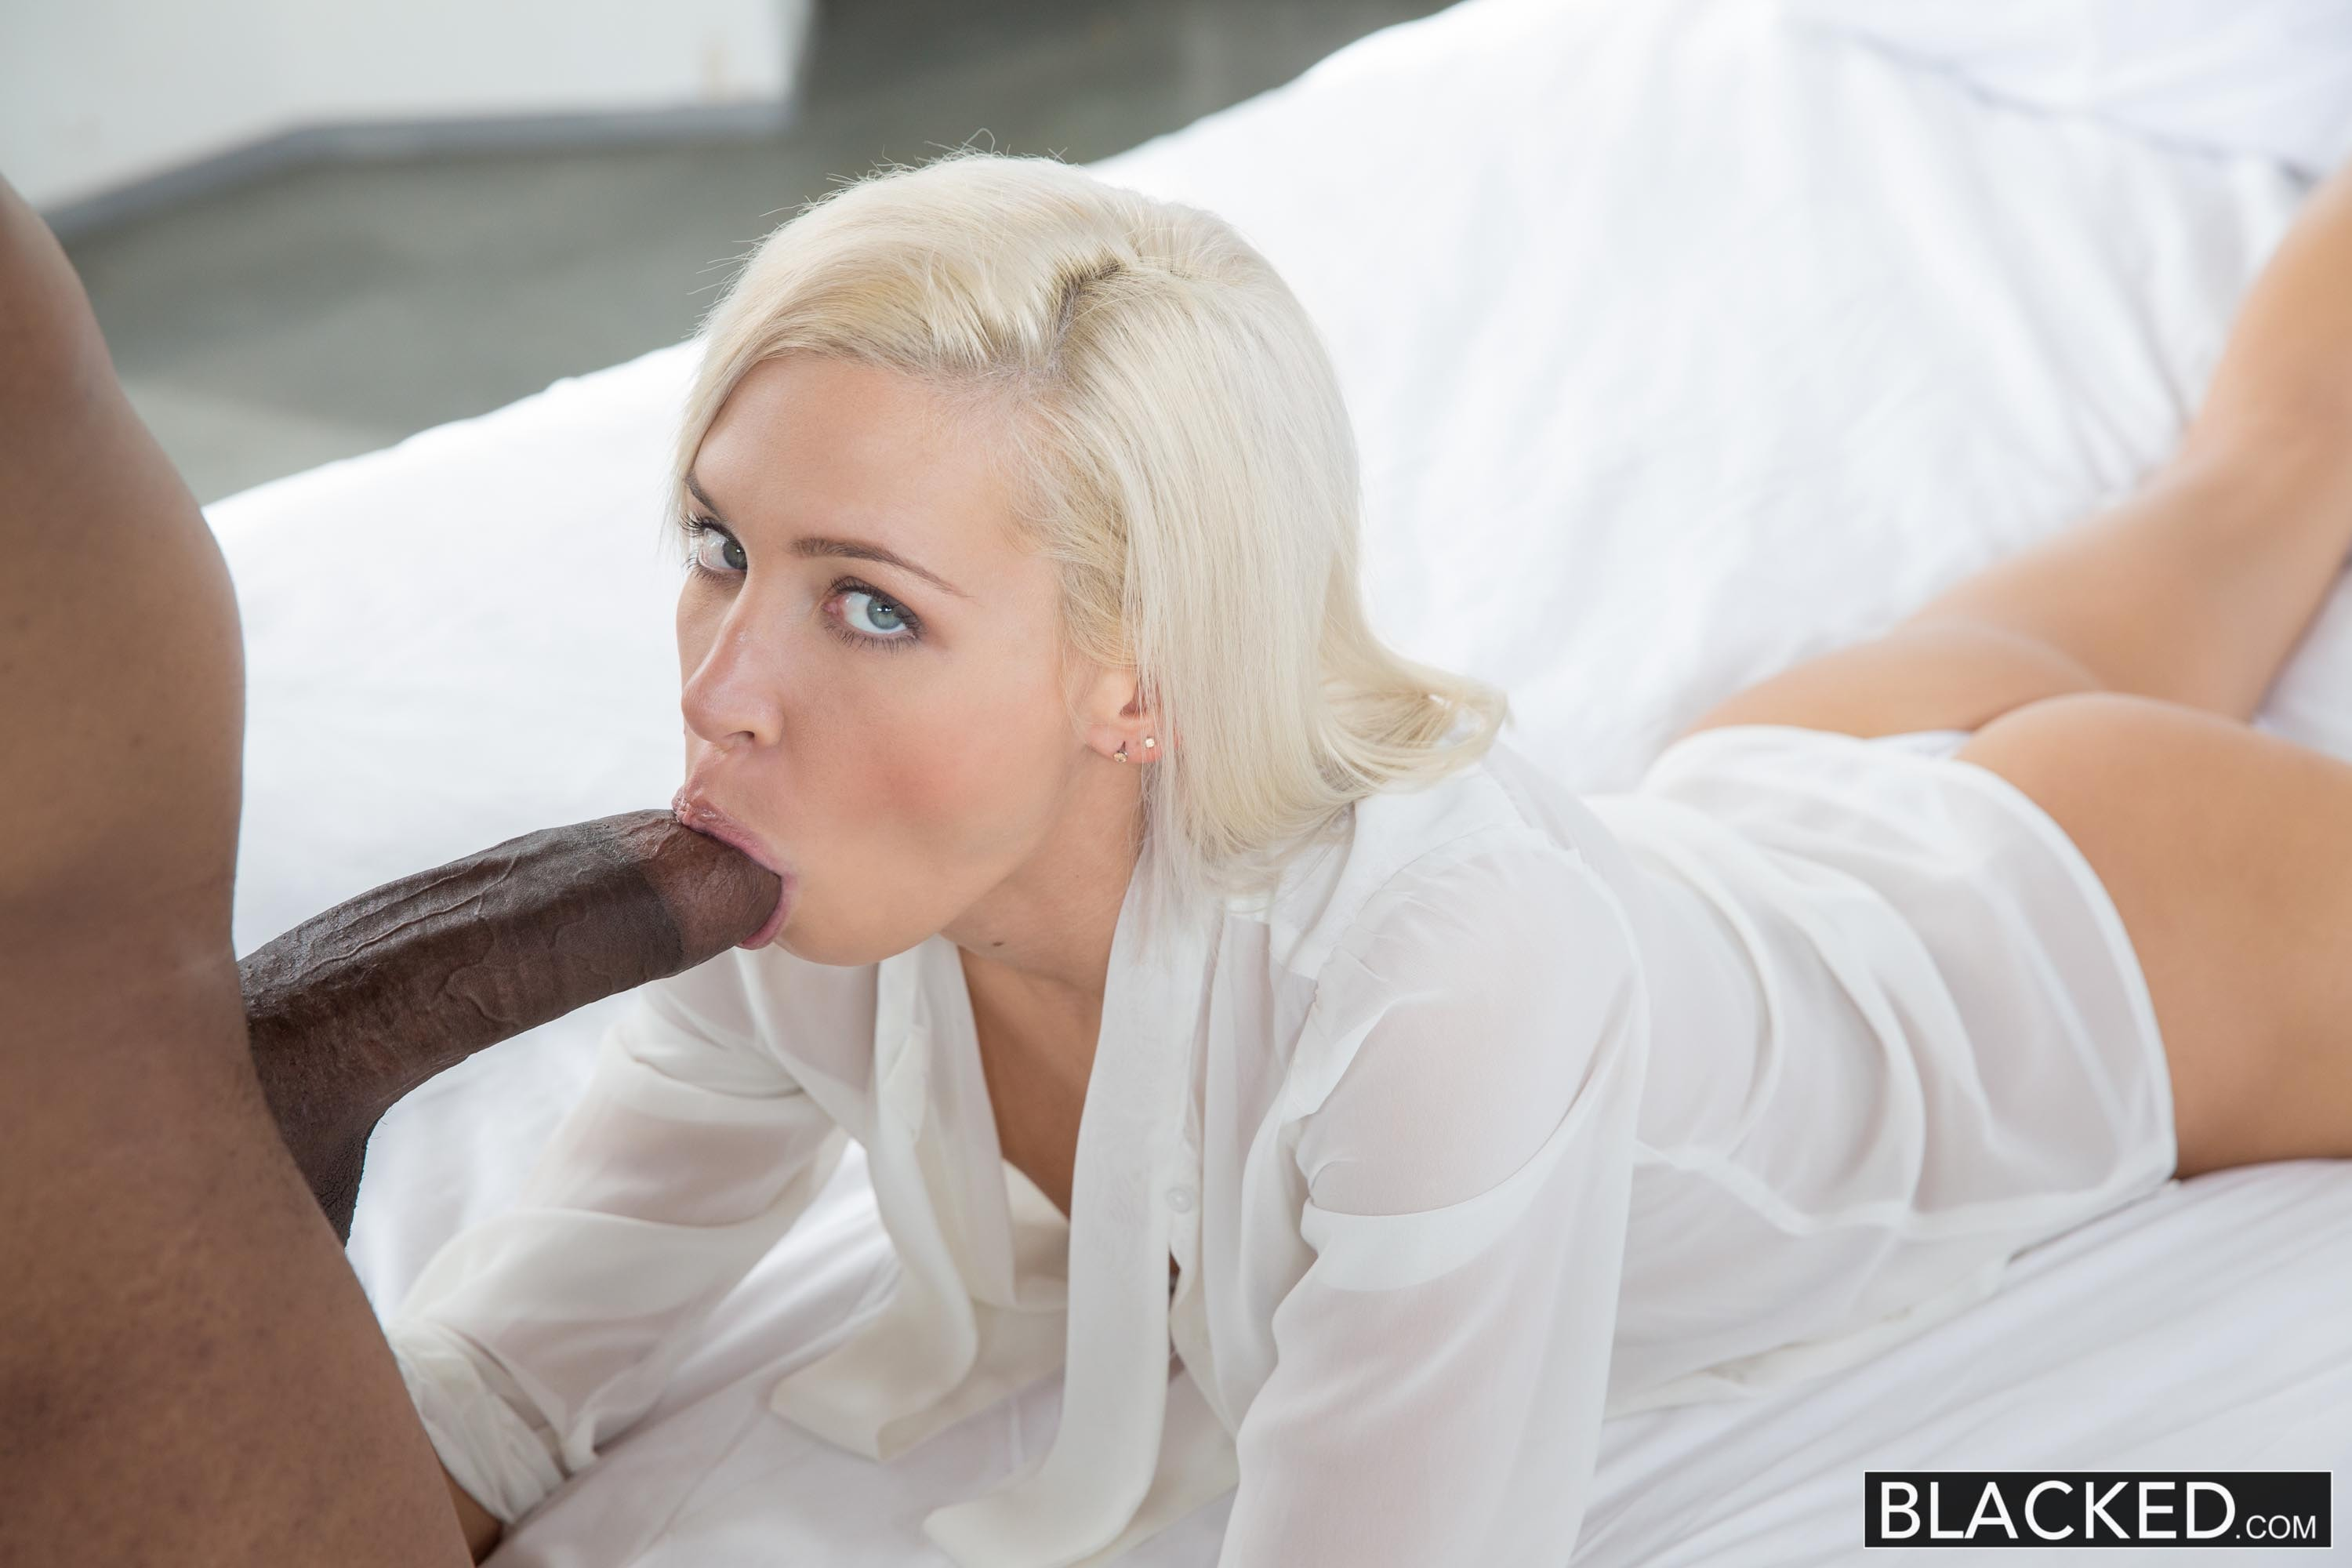 Blacked preppy blonde girlfriend kacey jordan cheats with bb